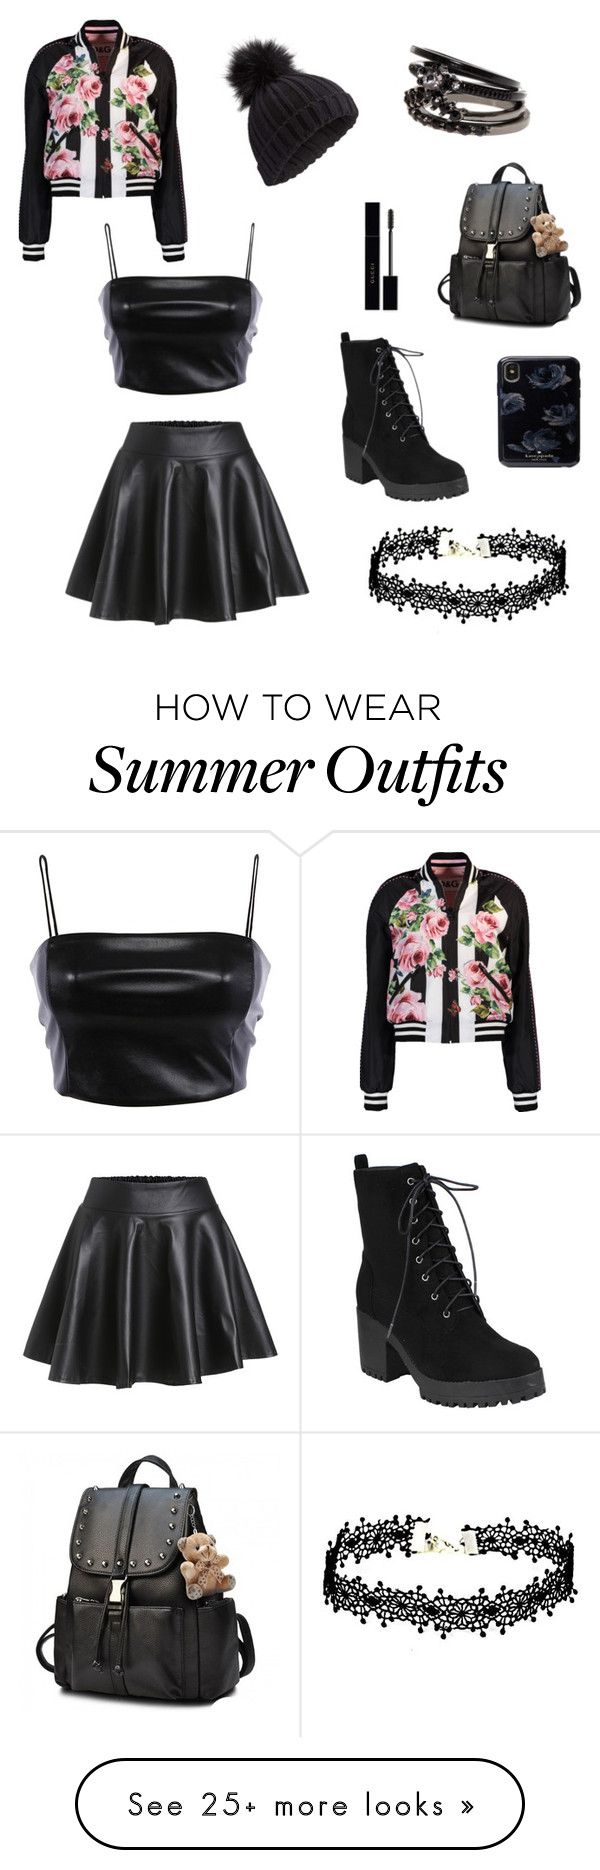 """""""Chic and Badass #feminism"""" by iceflower-ss on Polyvore featuring Miss Selfridge, Gucci, Dolce&Gabbana and allblackoutfit"""